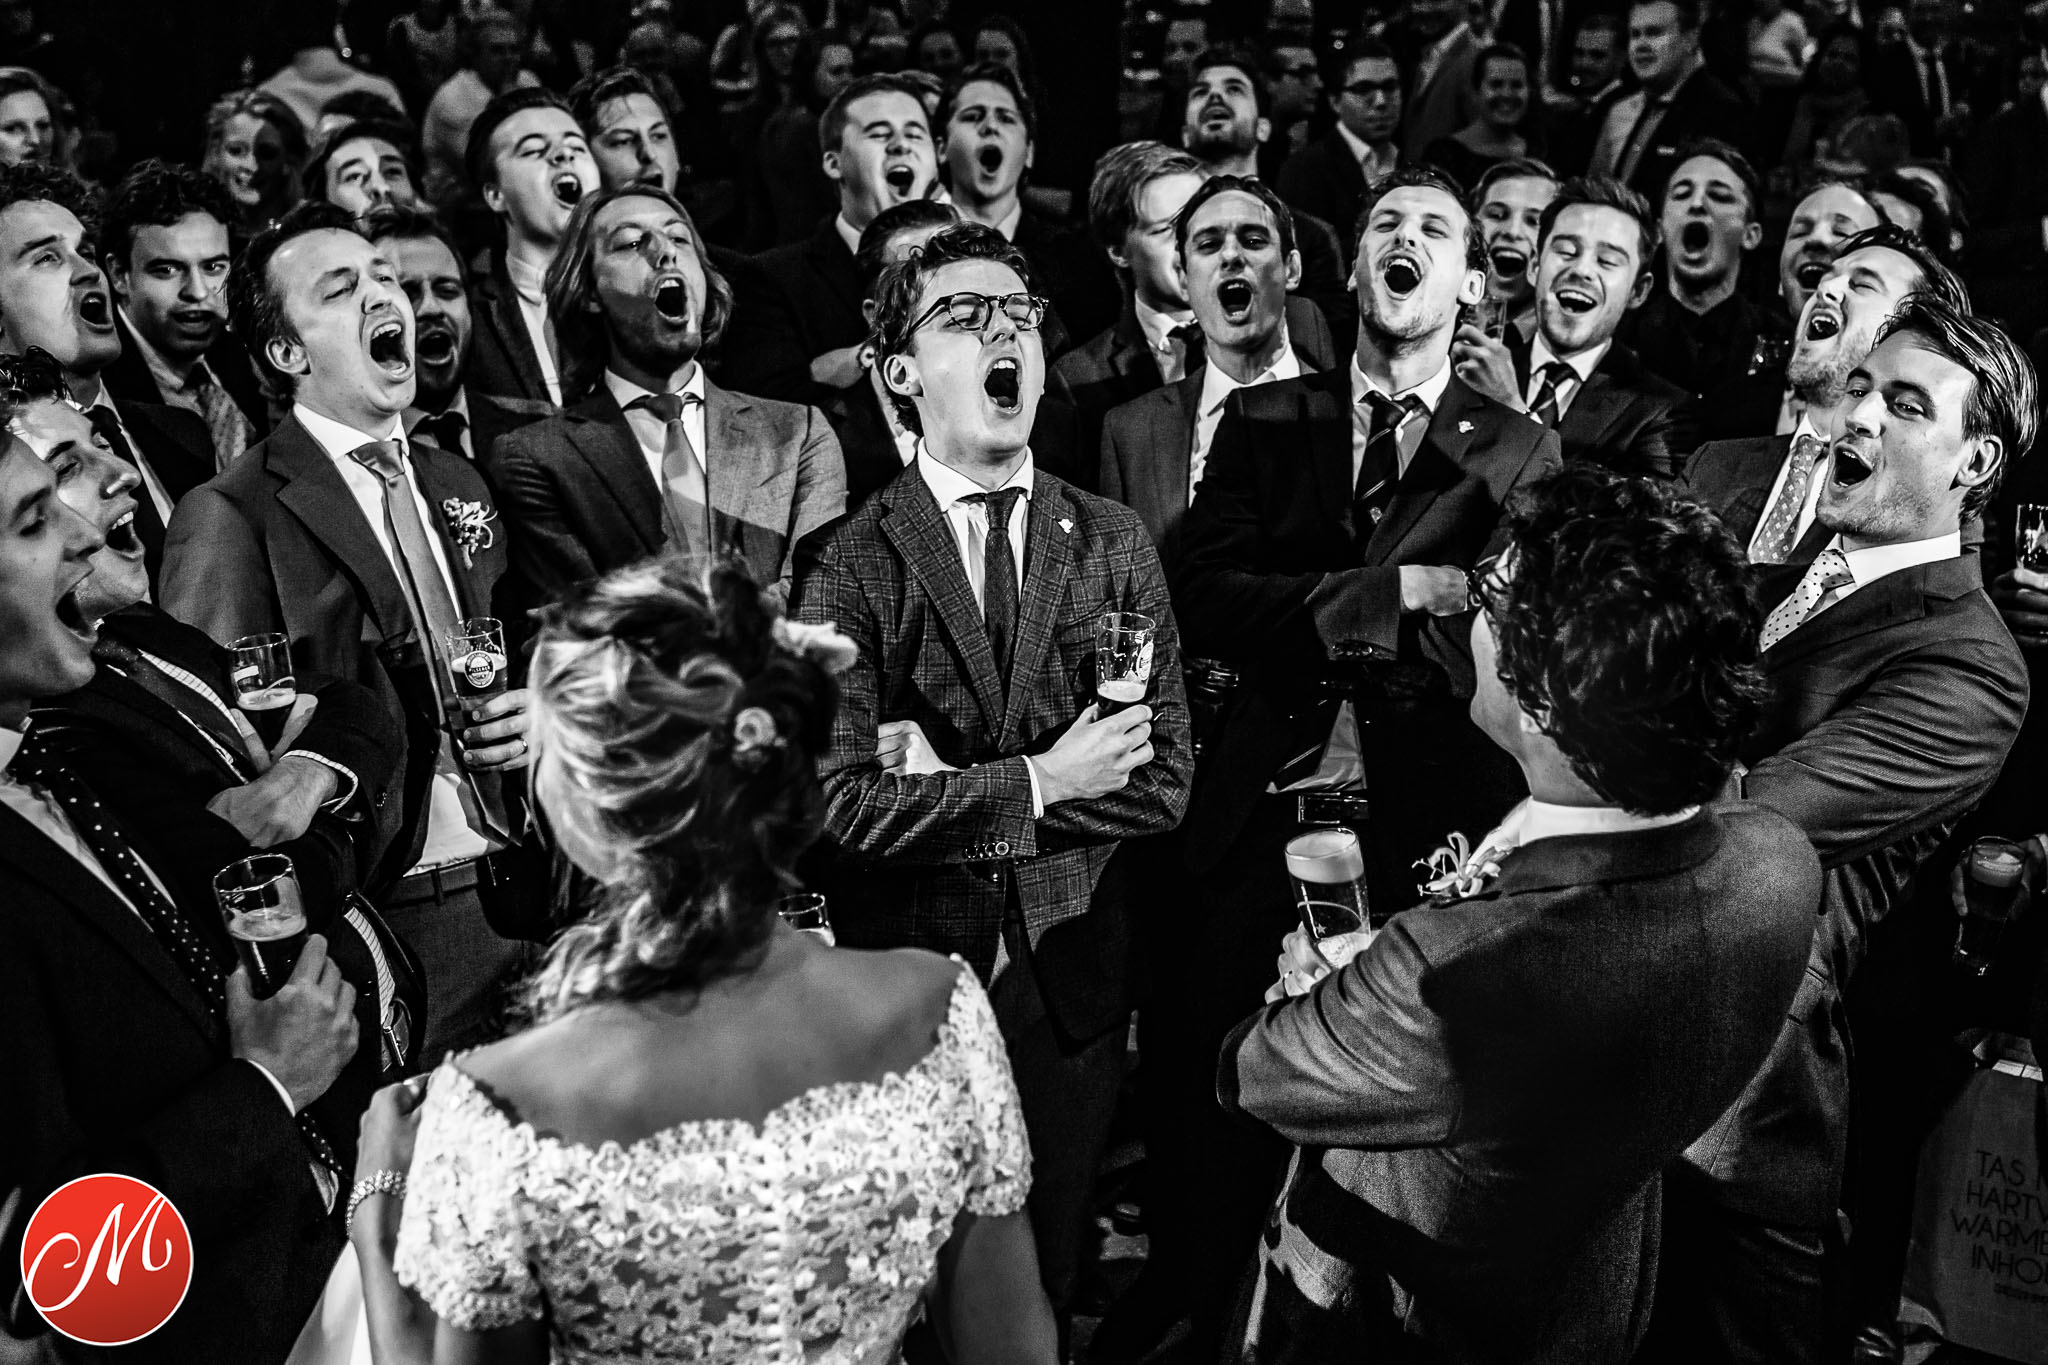 Masters of Wedding Photography Award 2019